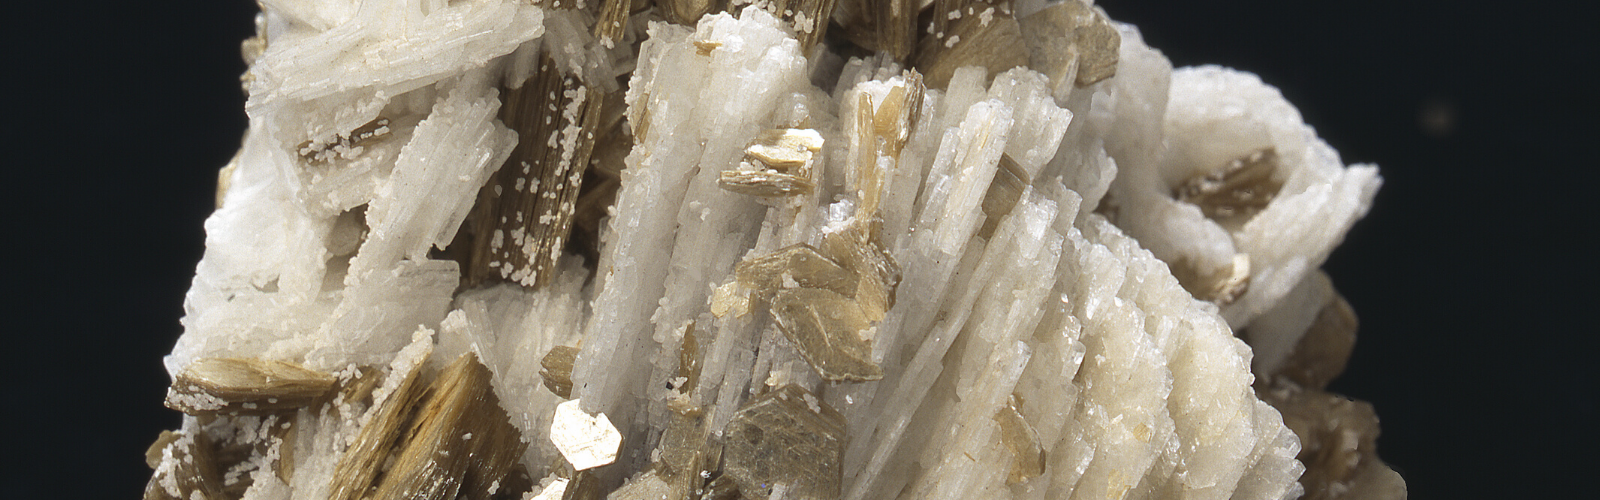 Close up view of a mica crystal with gold and white shimmery streaks running throughout on a black background.